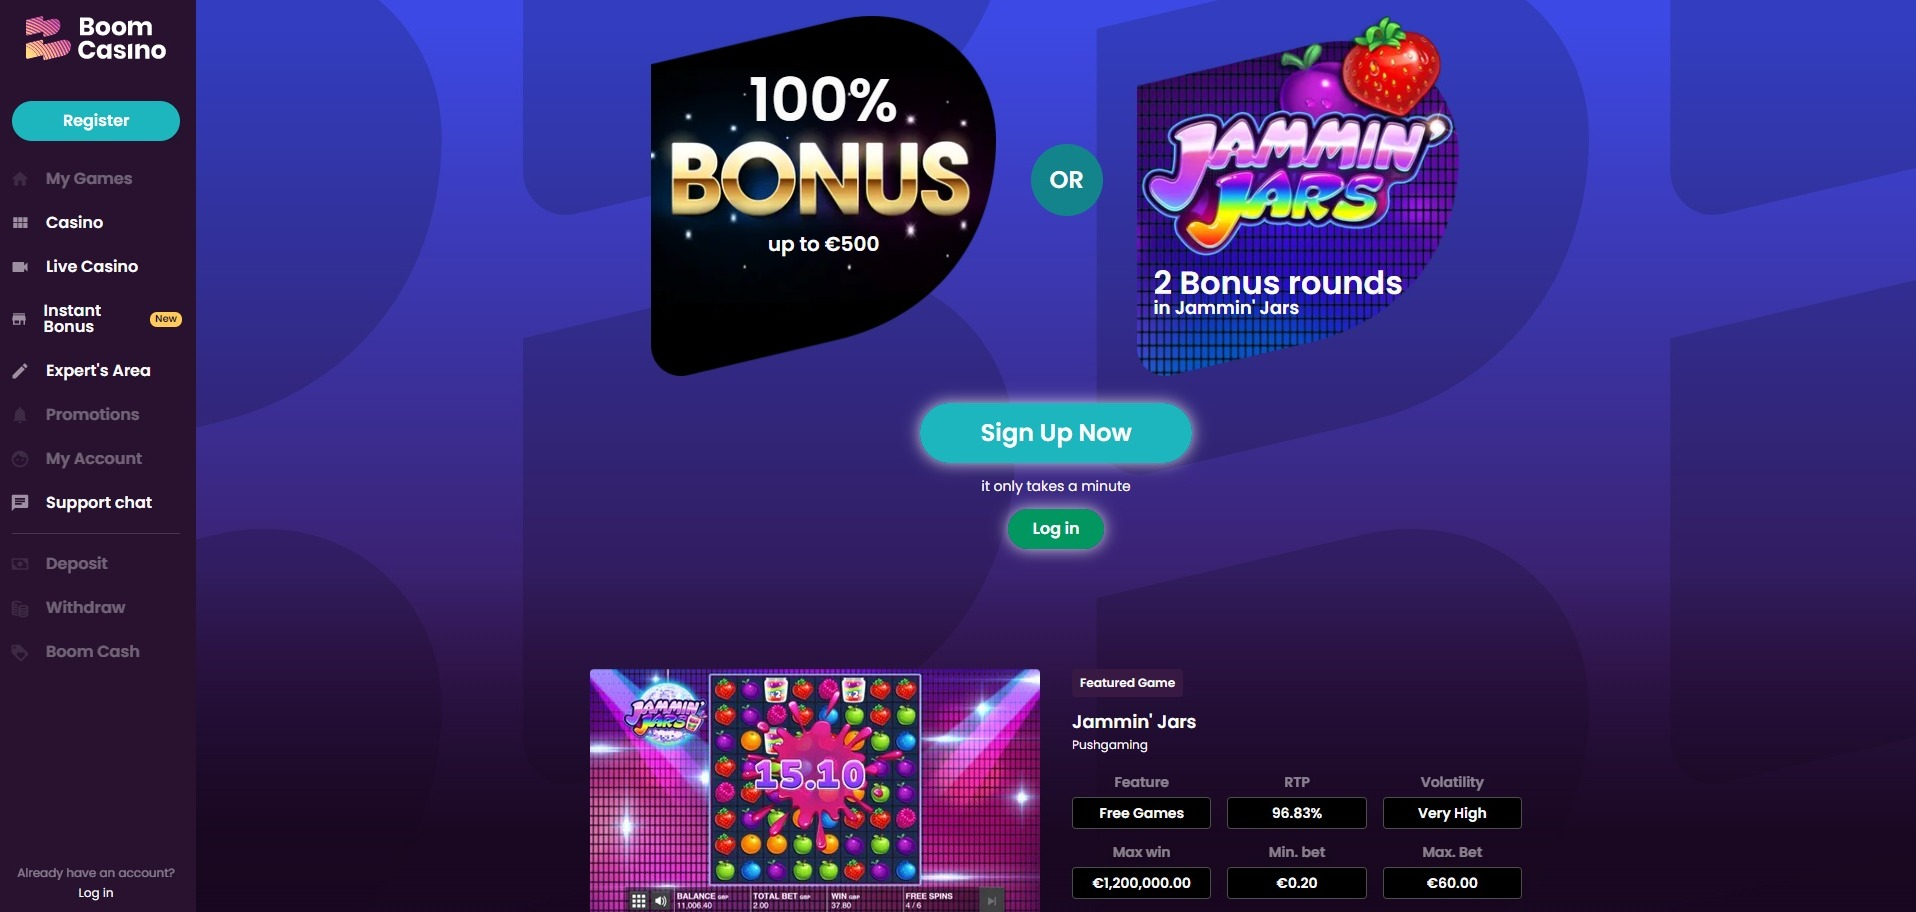 Boom Casino Welcome Offer & Promotions